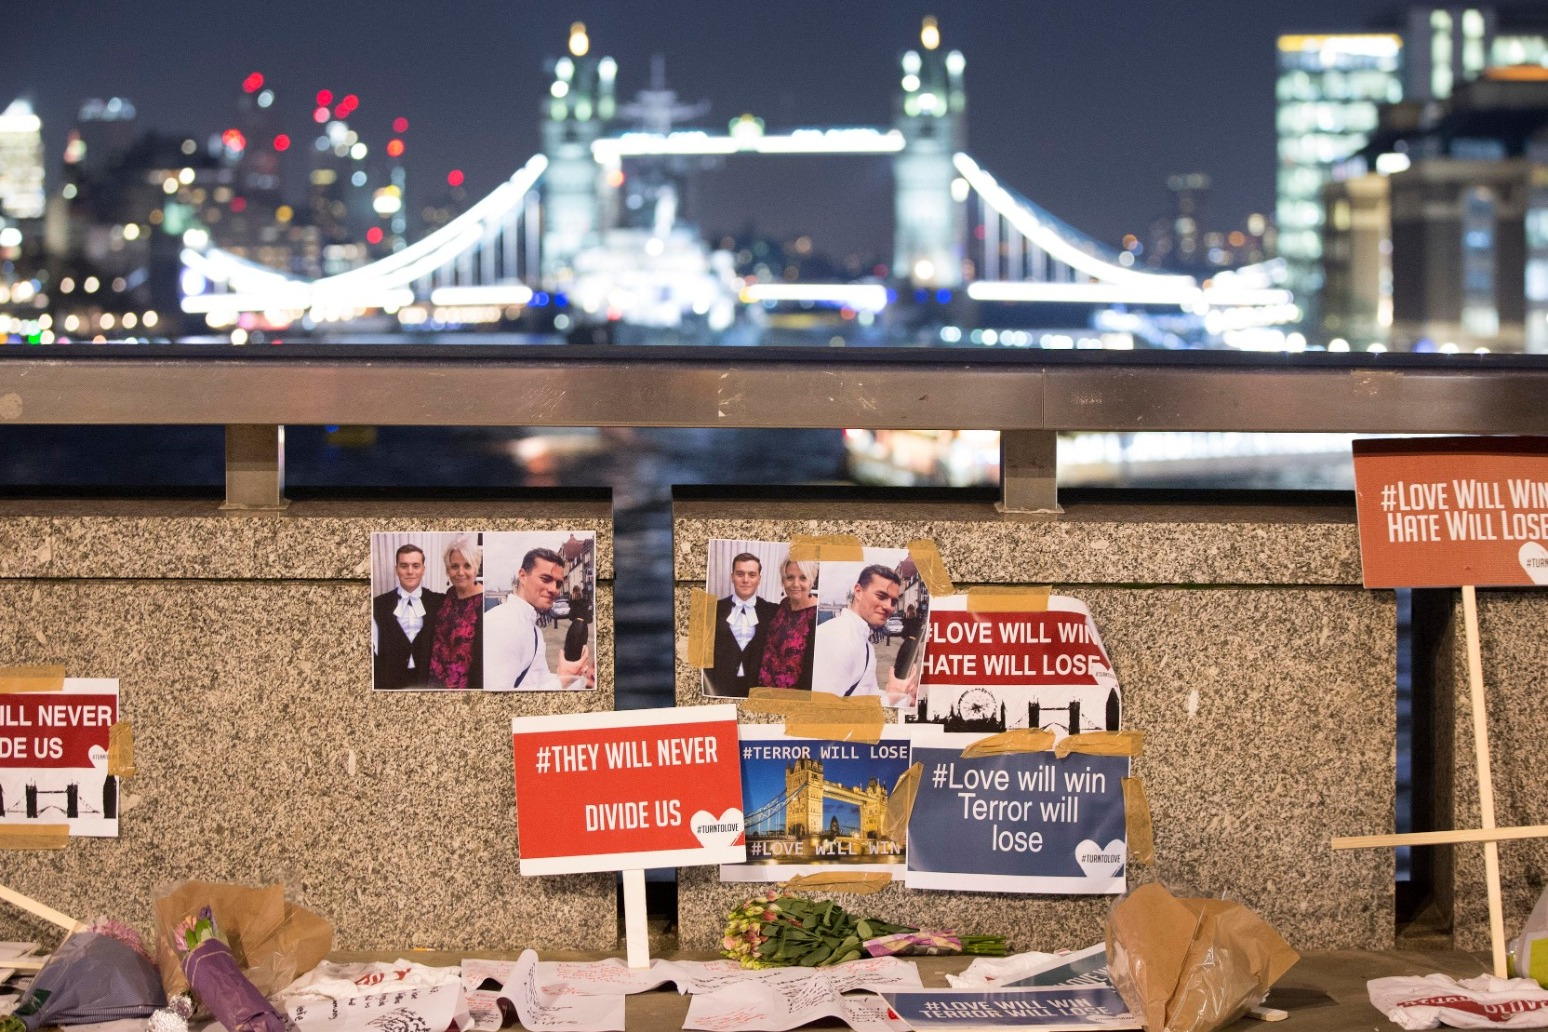 LONDON BRIDGE TERROR VICTIMS DIED AFTER BEING STABBED IN CHEST, INQUEST TOLD